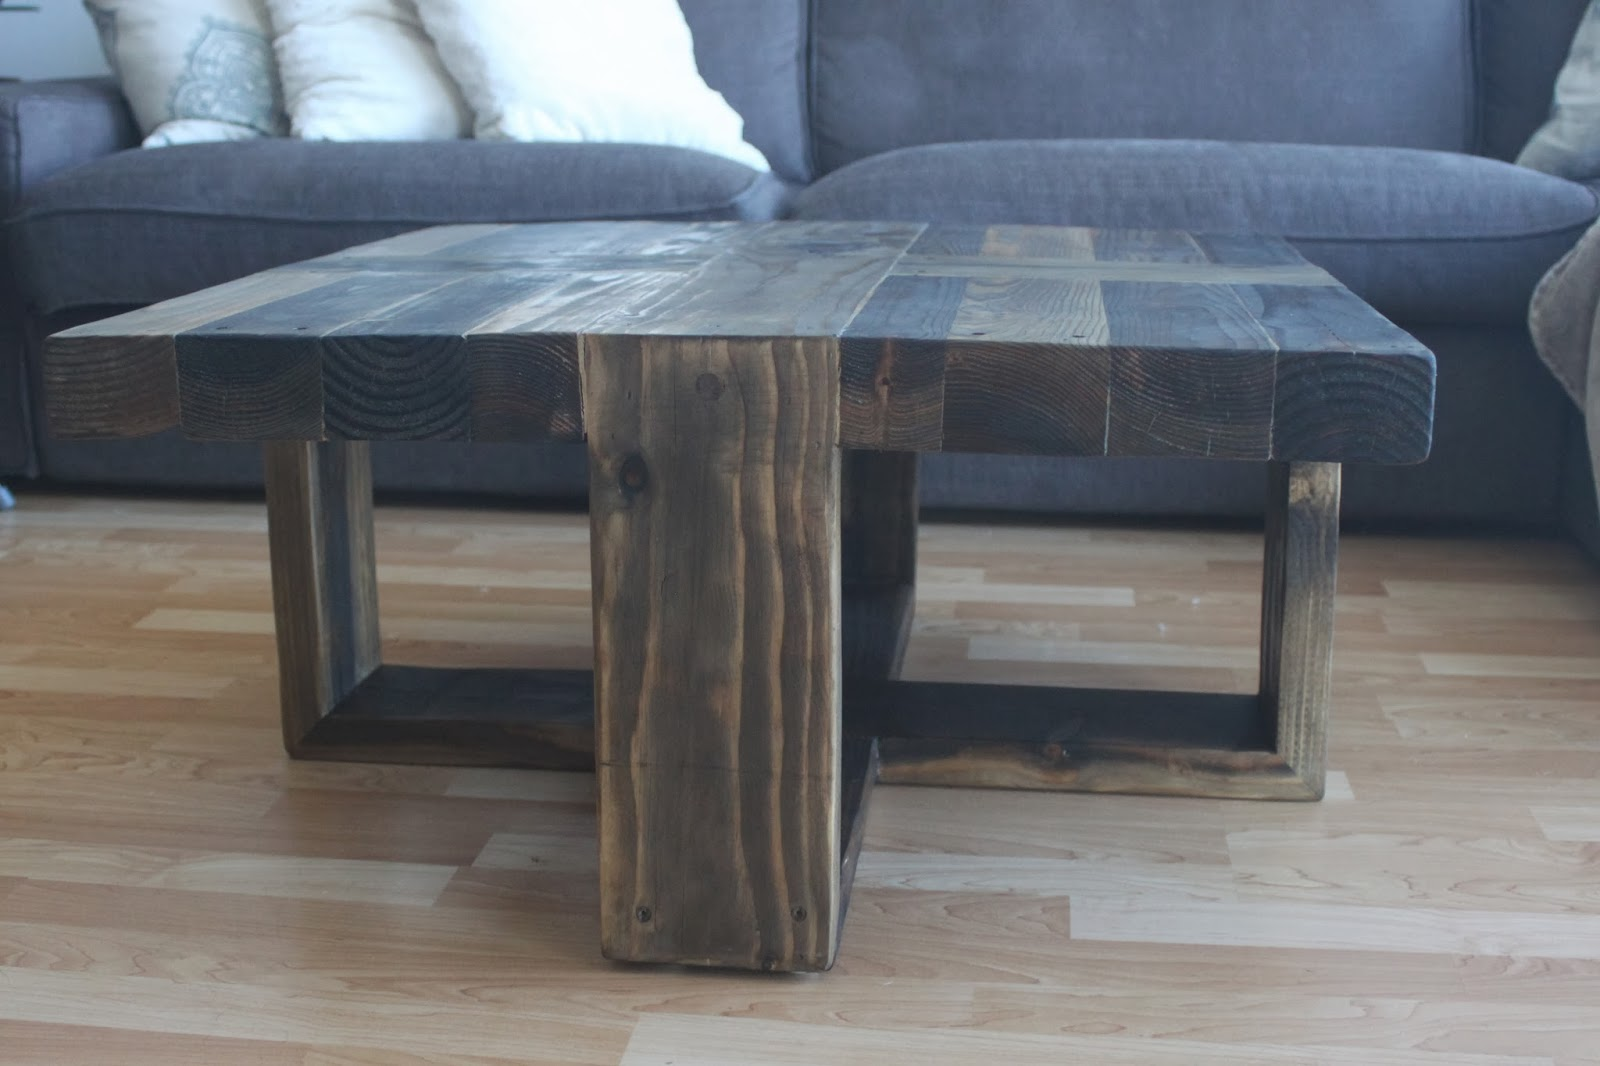 The Polish Carpenter Unique Rustic Coffee Table